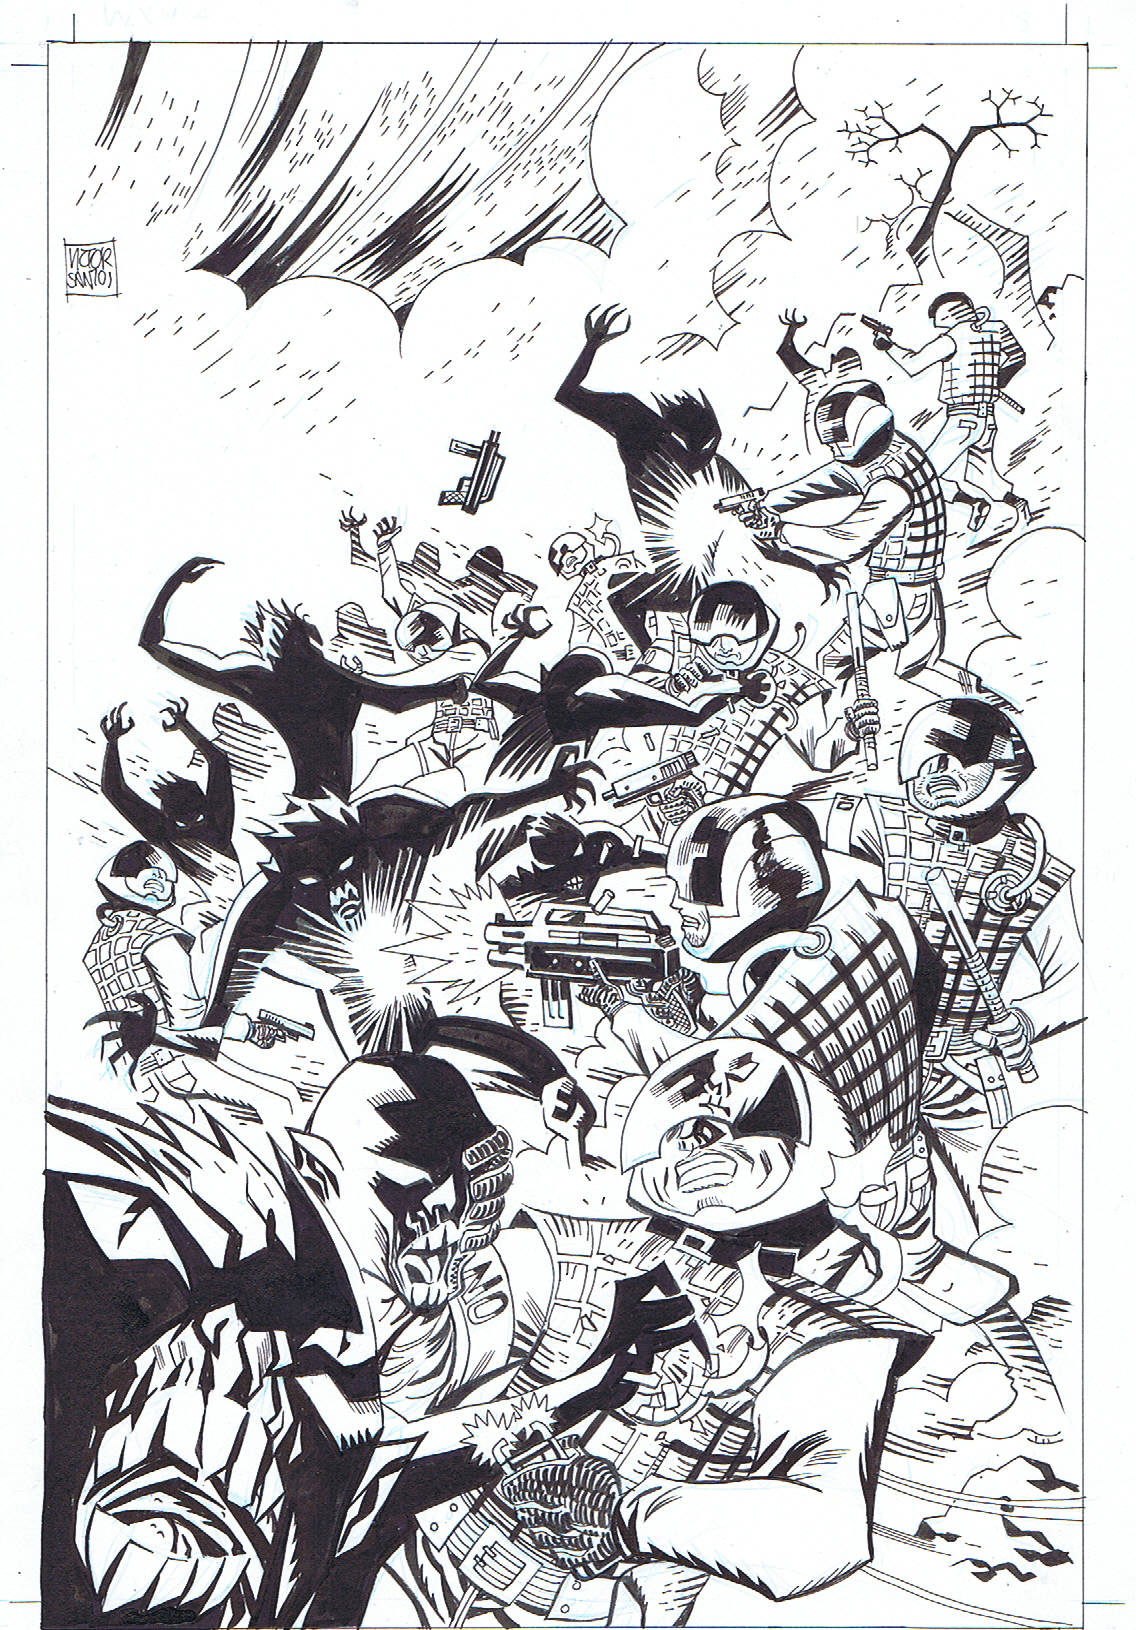 JAMES PATTERSON'S WITCH & WIZARD #4 SPLASH PAGE